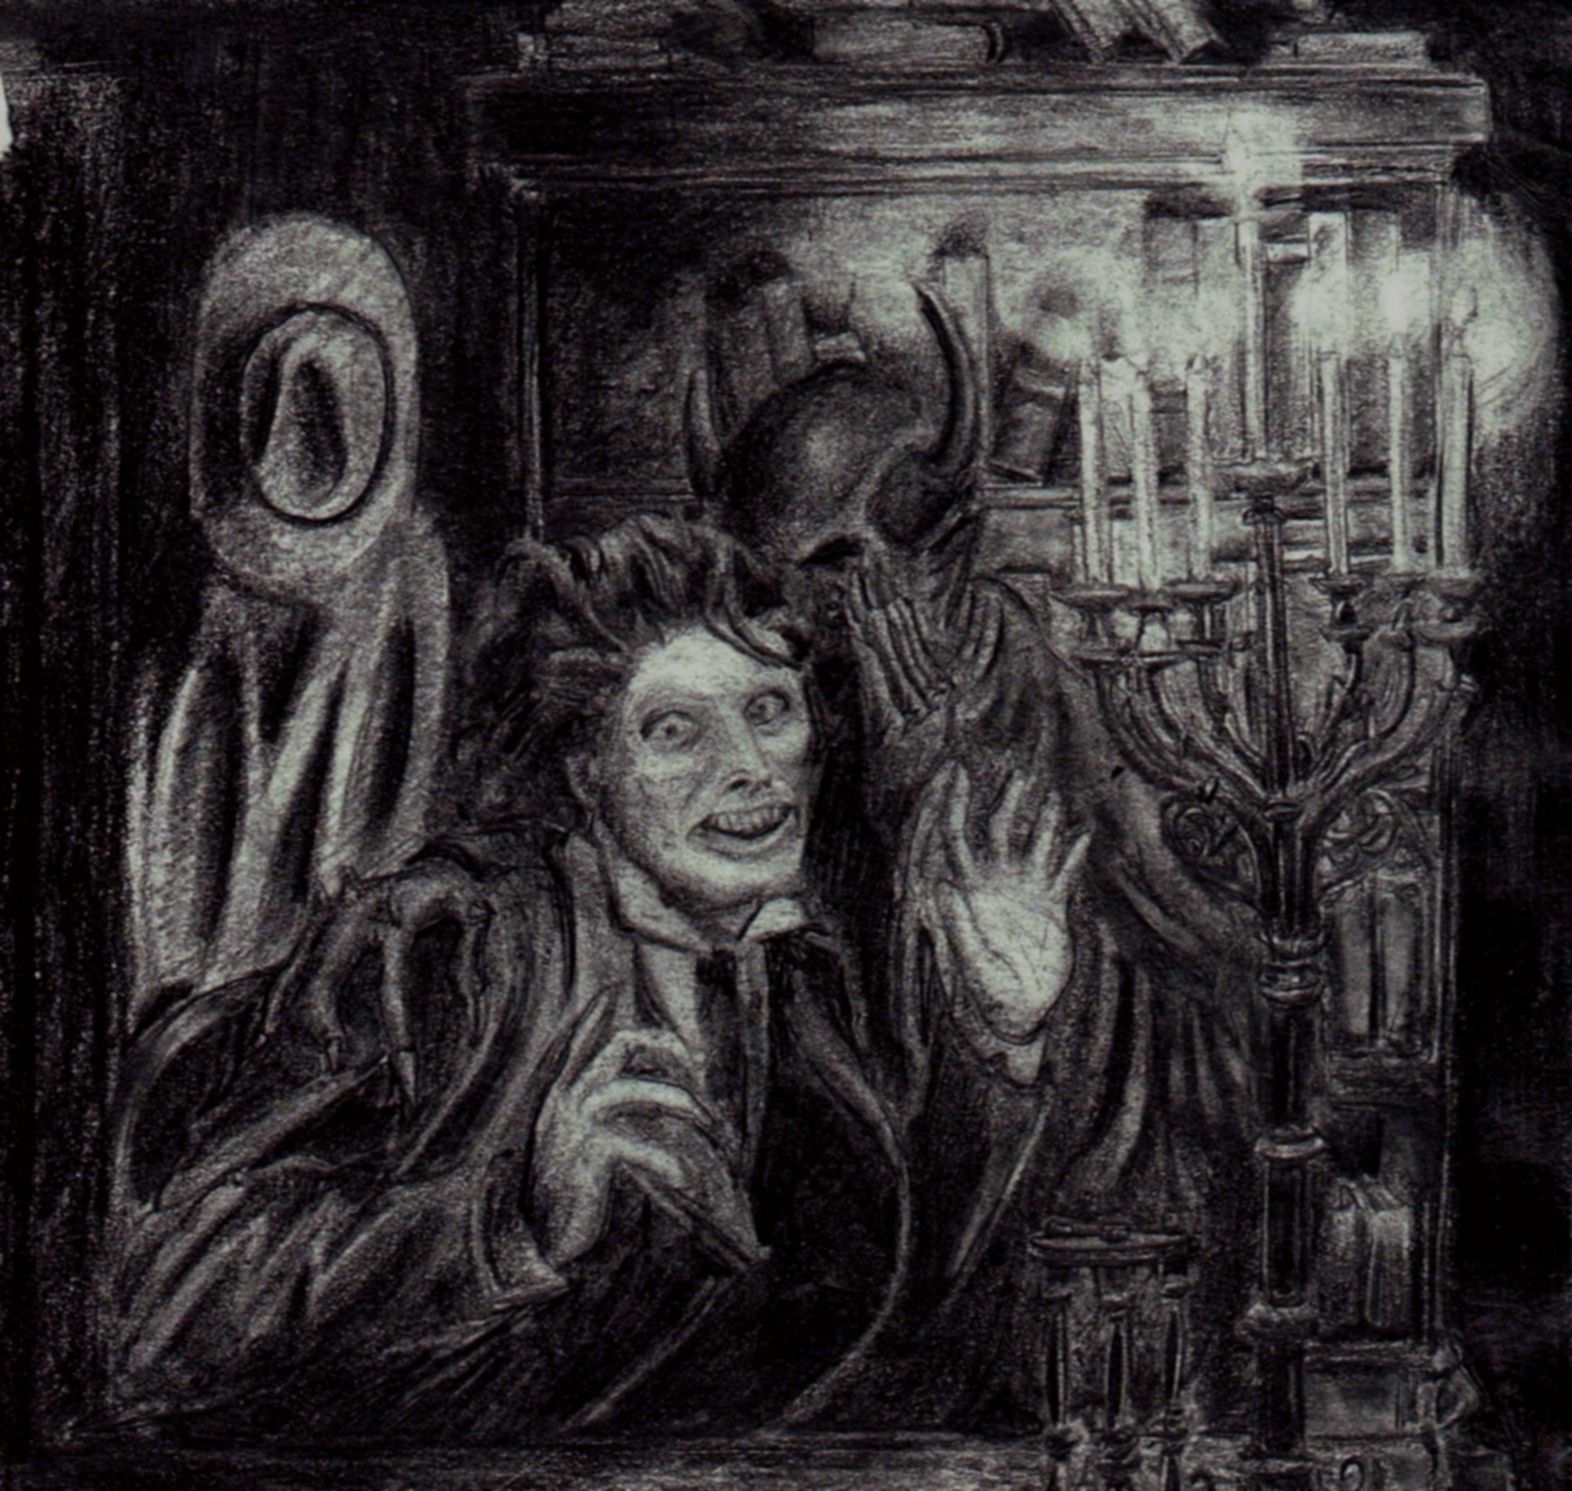 Faust or Crazed Man